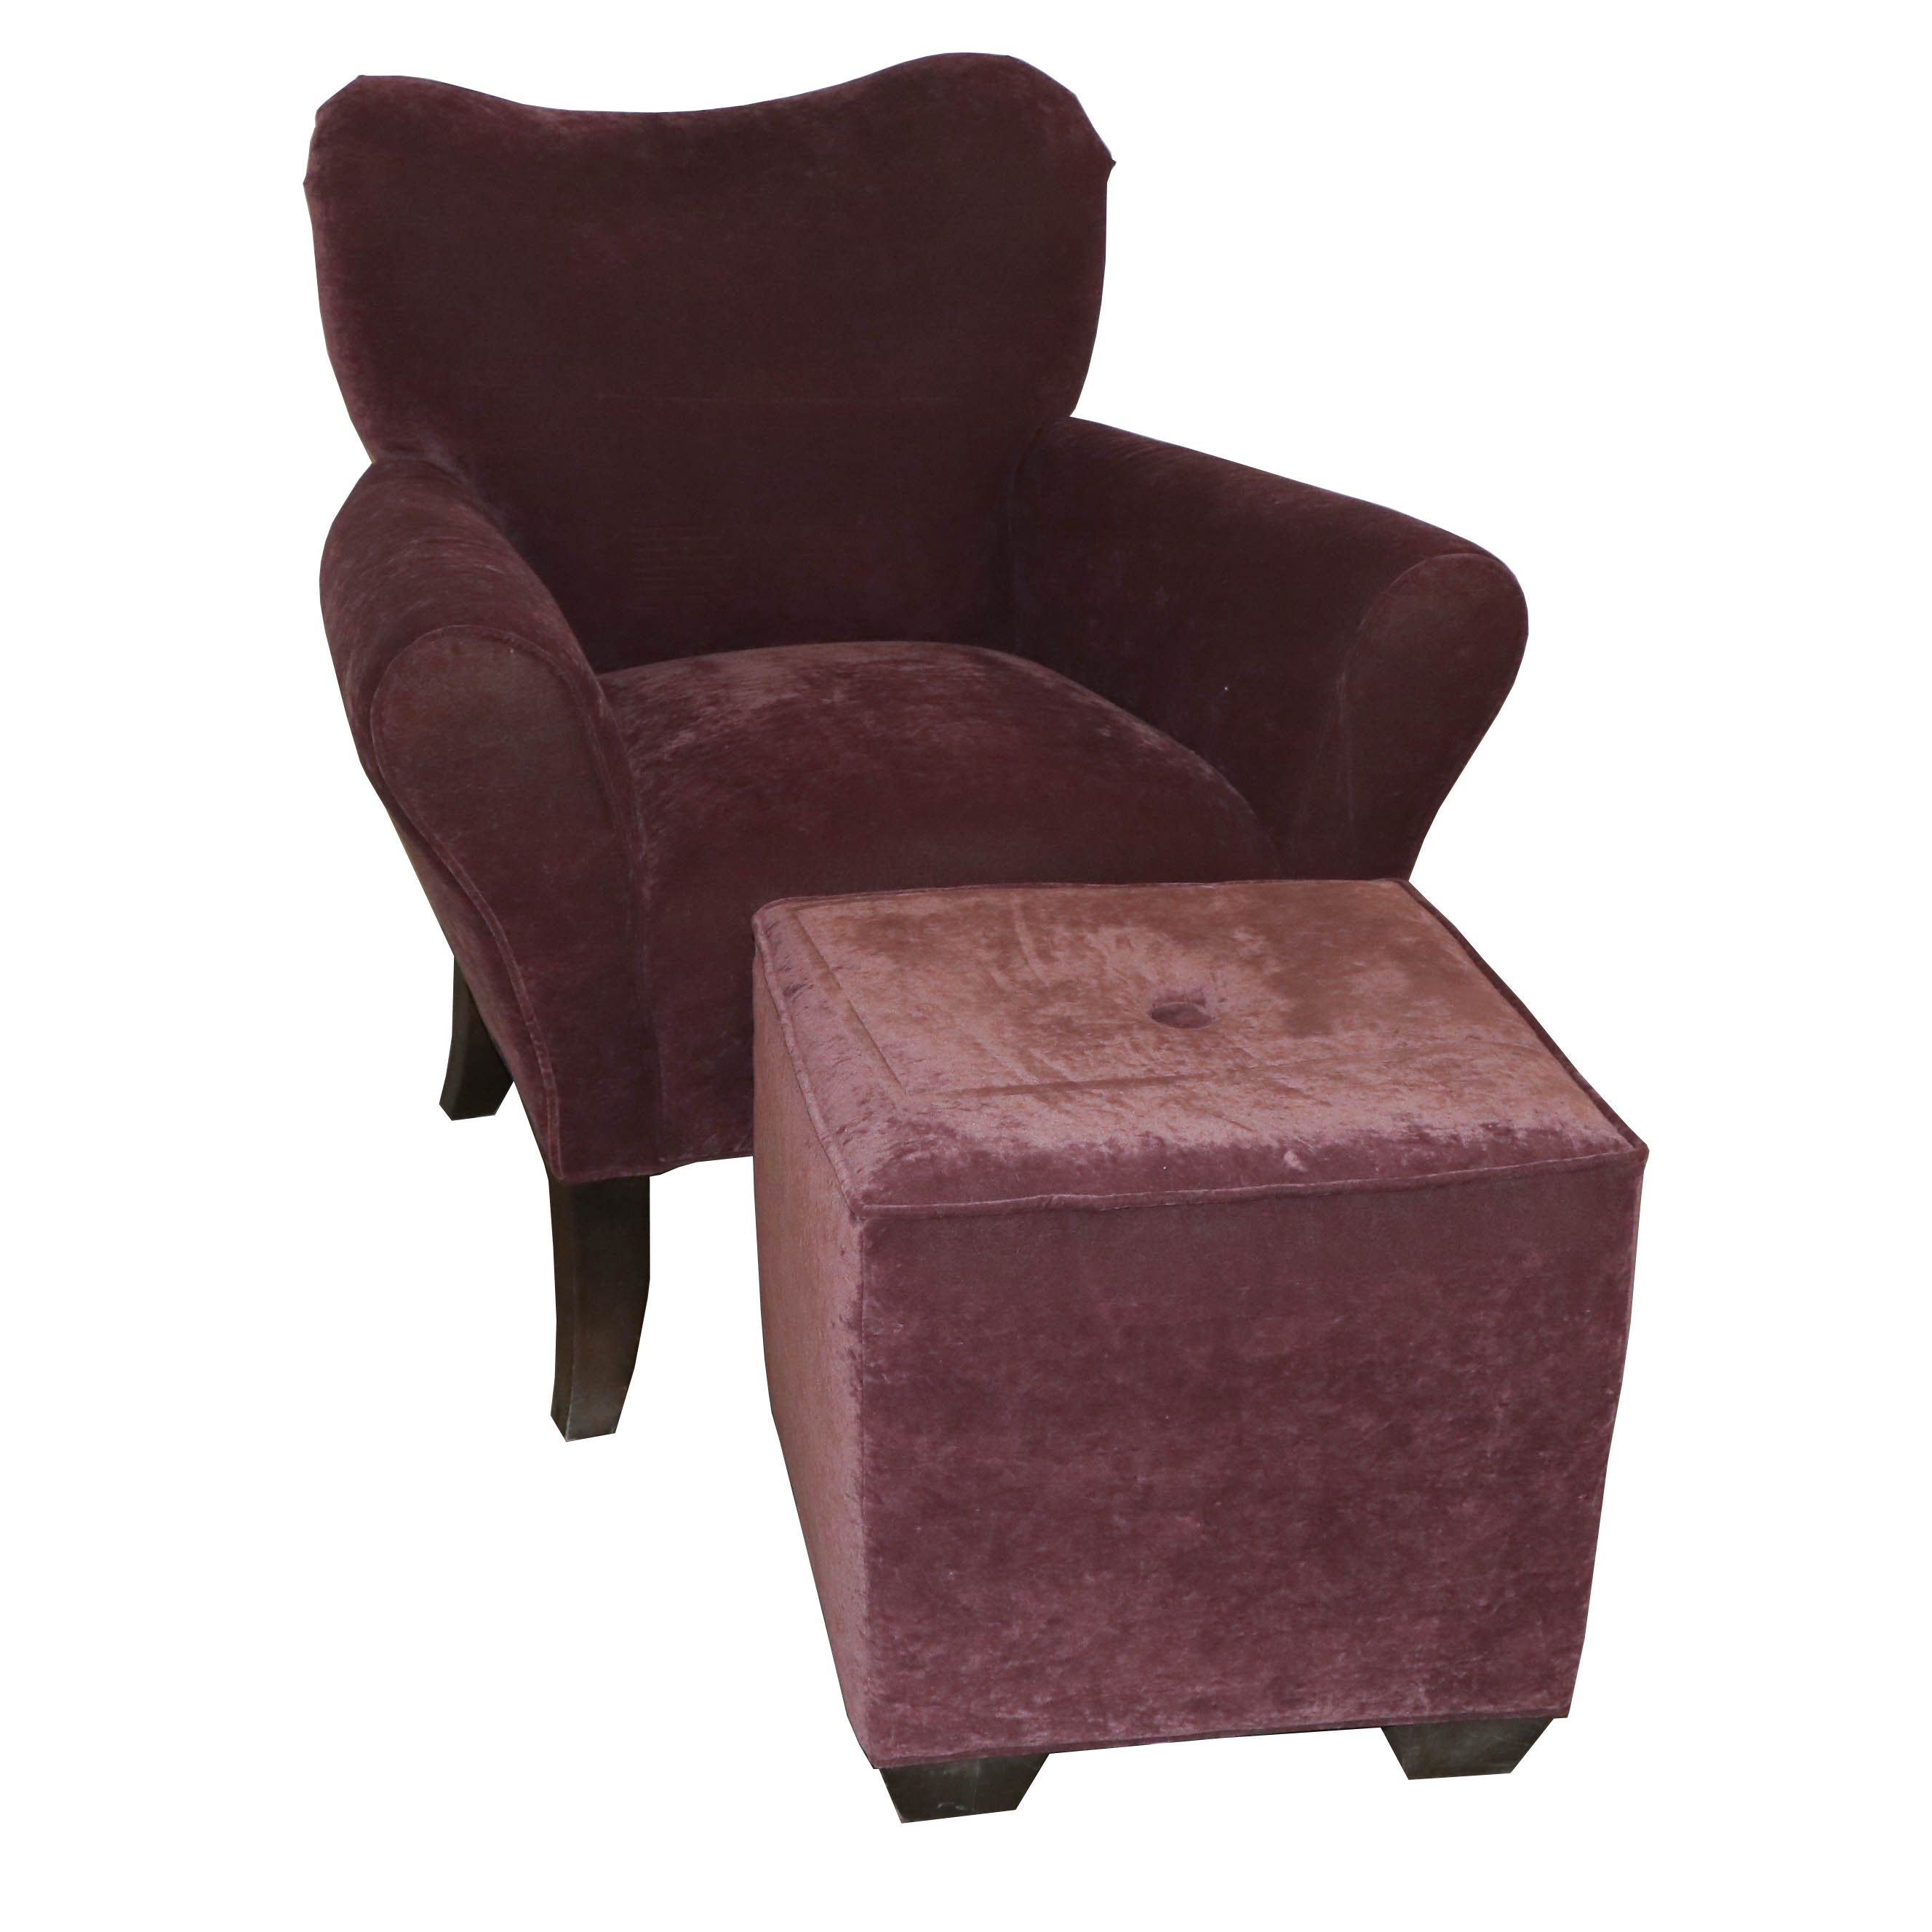 Contemporary Upholstered Armchair and Ottoman